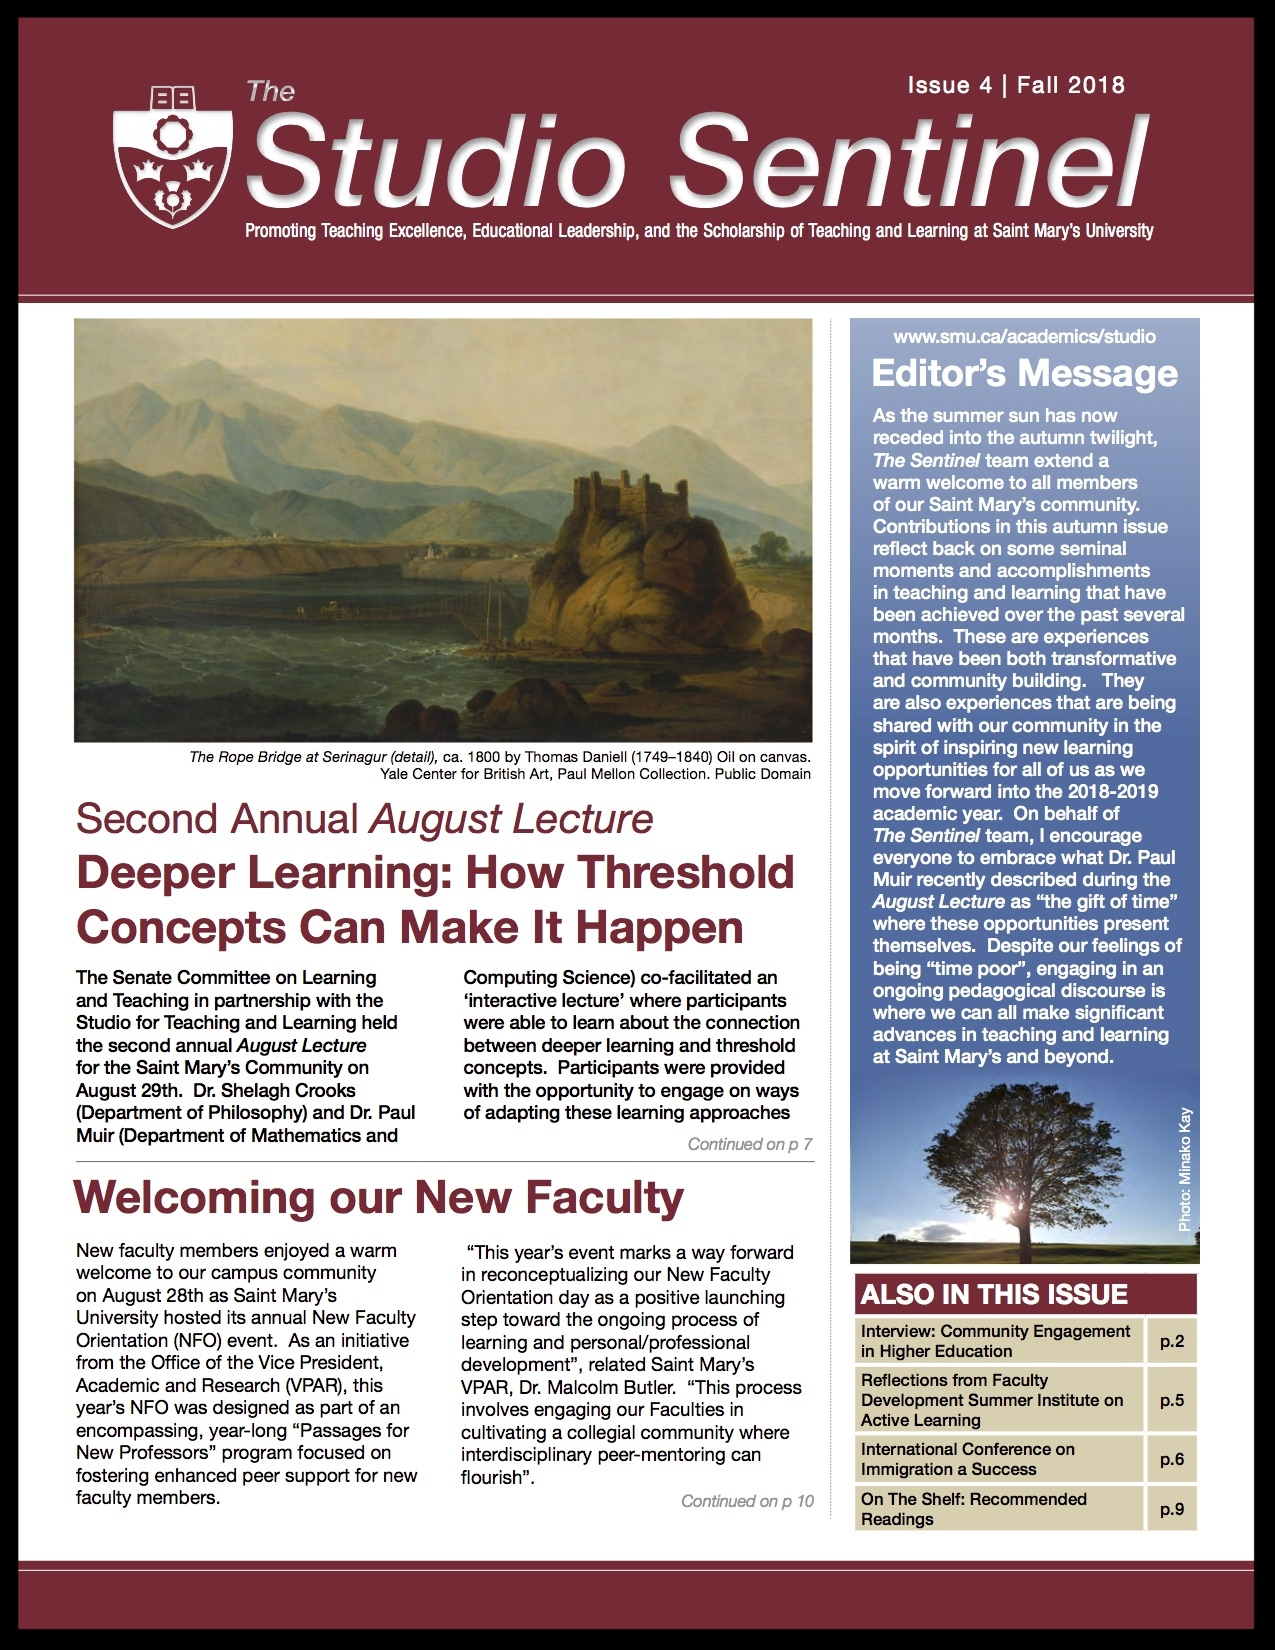 Issue 4: Fall 2018 - Deeper Learning: How Threshold Concepts Can Make it HappenWelcoming Our New FacultyCommunity Engagement in Higher EducationReflections From Faculty Development Summer Institute on Active LearningInternational Conference on Immigration: SMU Support a Recipe for Conference SuccessOn The Shelf: Recommended Readings